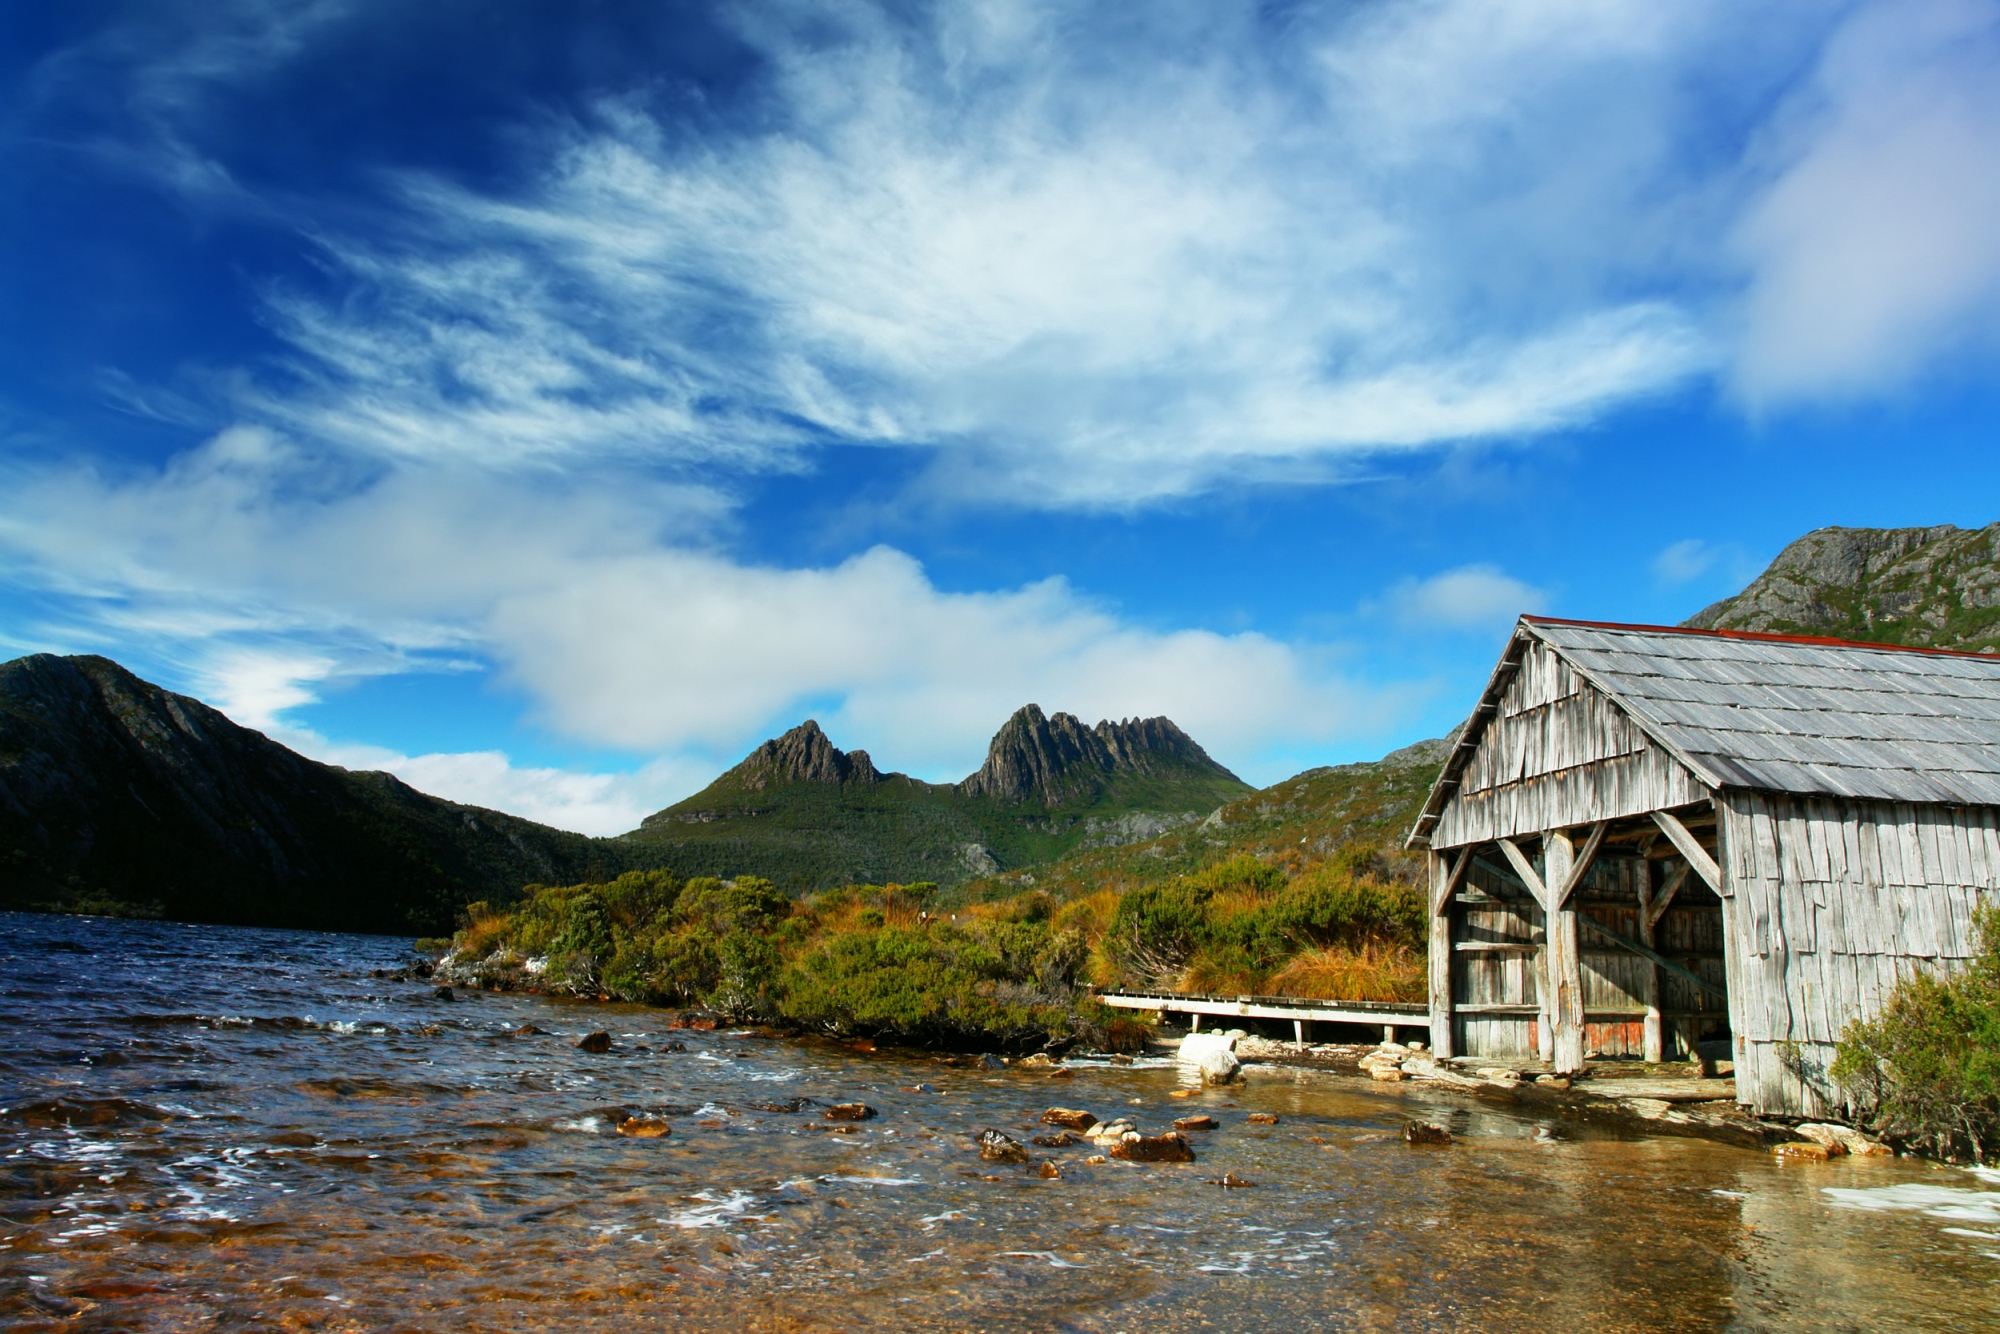 Tasmania - Cradle Mountain